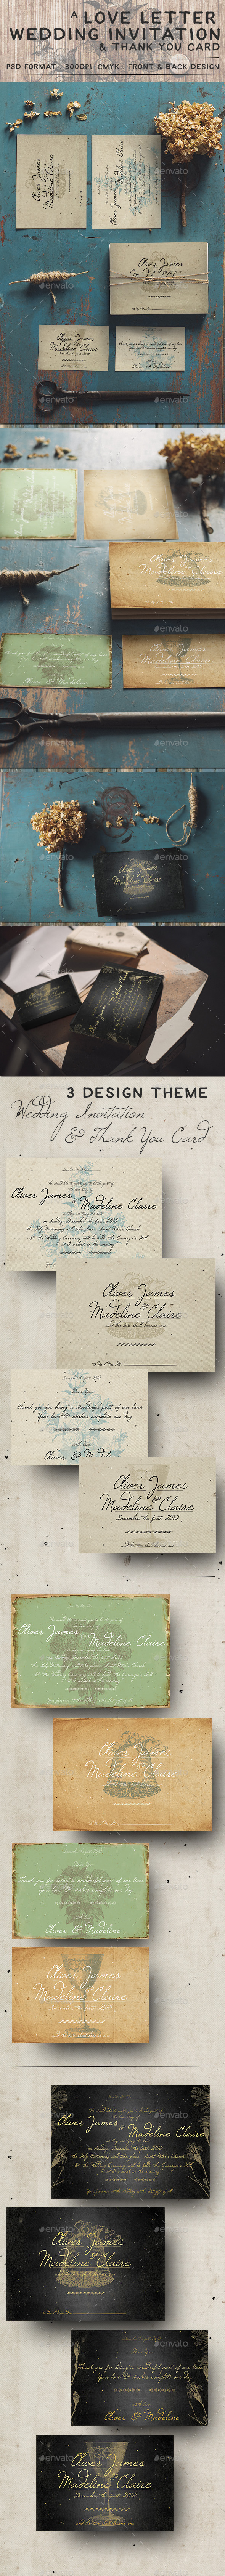 Love Letter Wedding Invitation - Weddings Cards & Invites